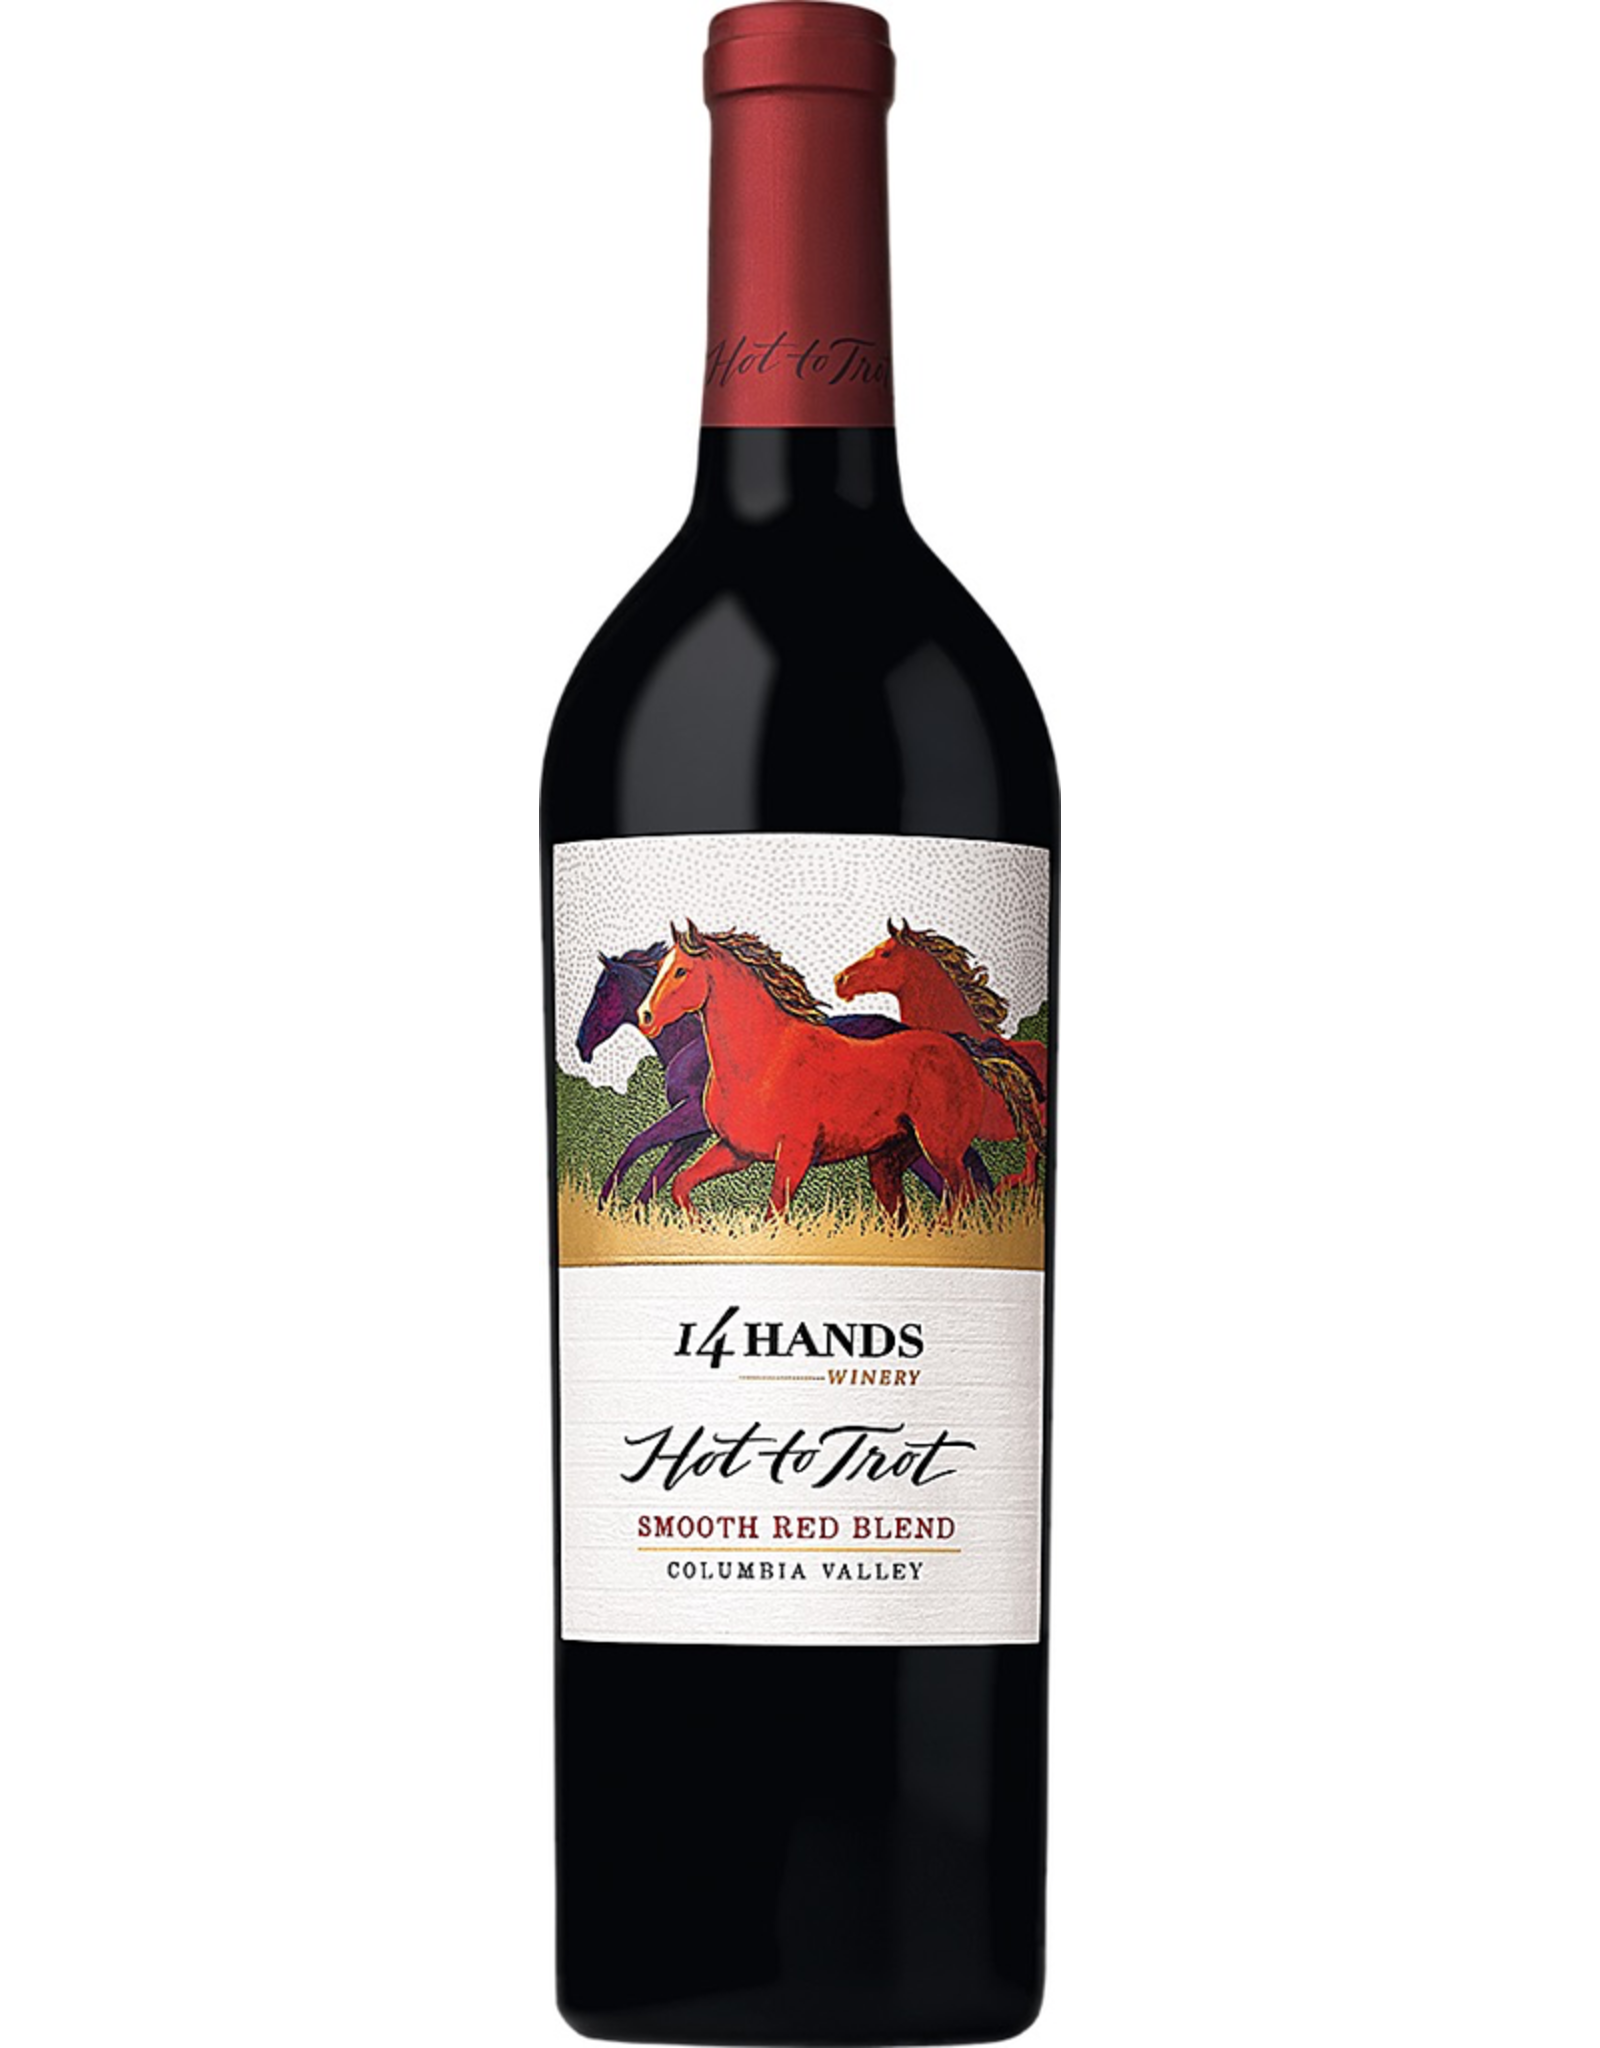 Red Wine 2016, 14 Hands Hot to Trot by Ste Michelle Wine Estates, Red Blend, Multi AVA, Columbia Valley, Washington, 13.5% Alc, CT 85